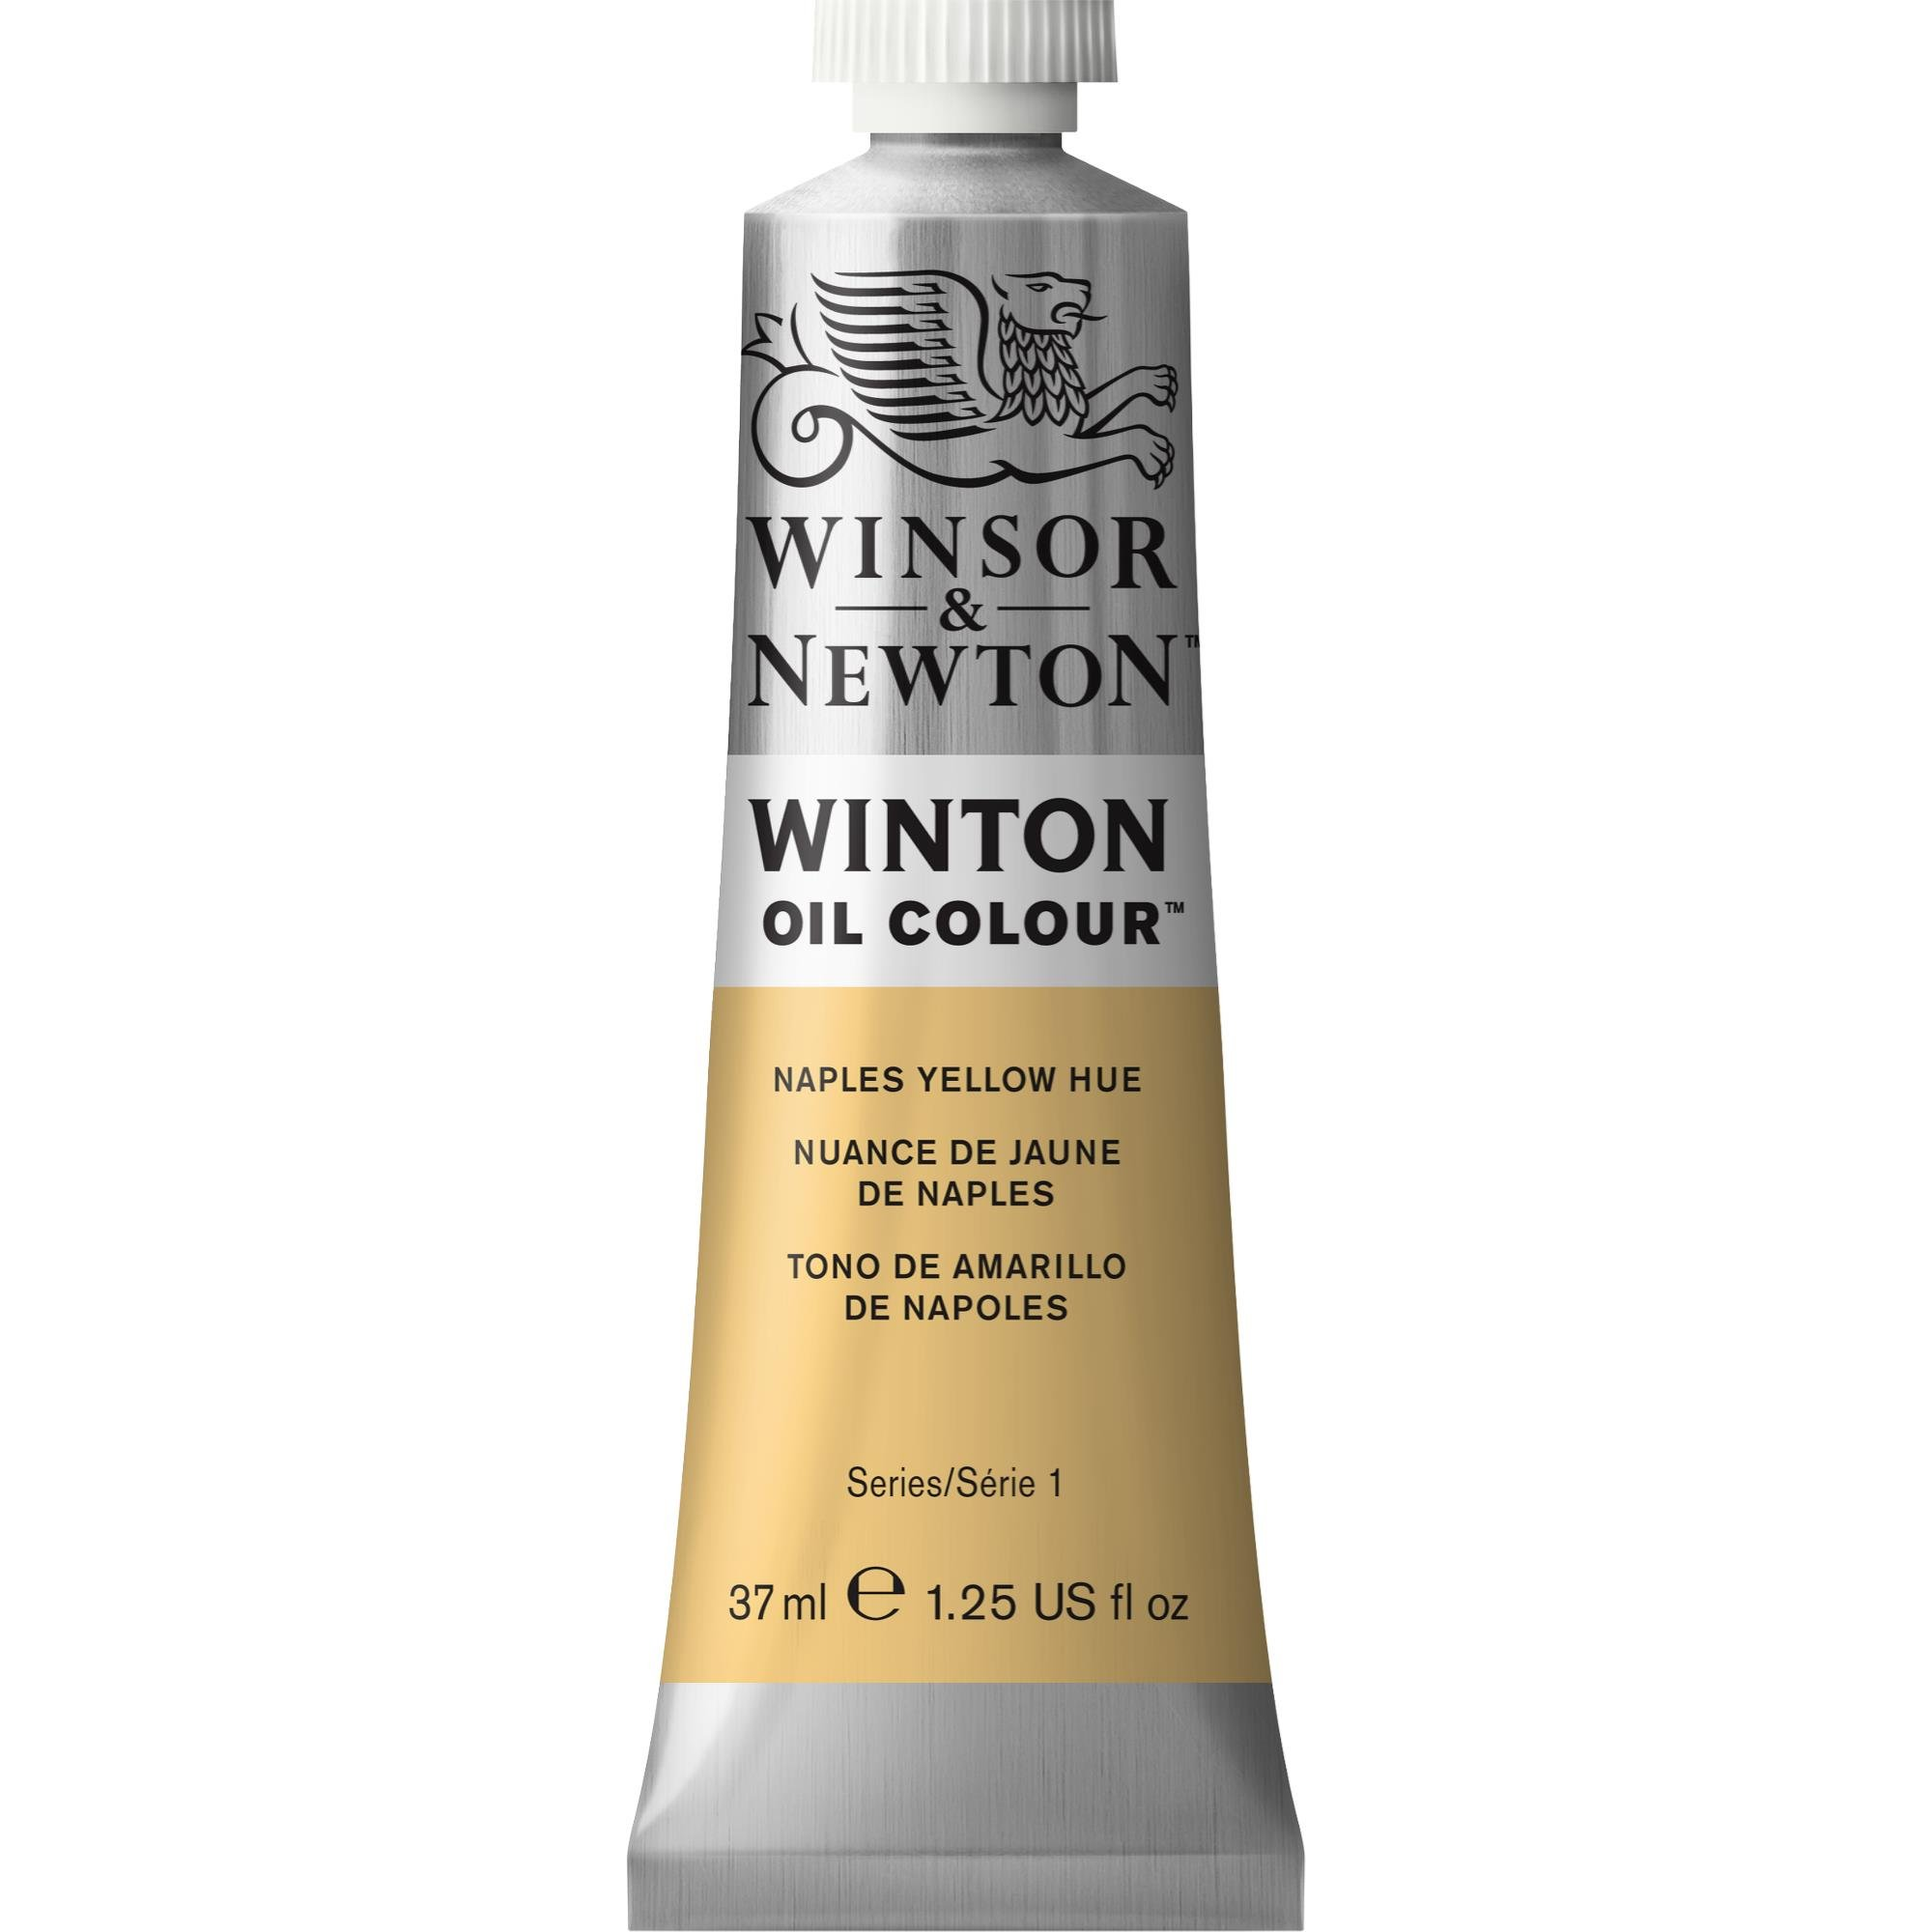 Winsor & Newton Winton Oil Colour Paint, 37ml tube, Naples Yellow Hue